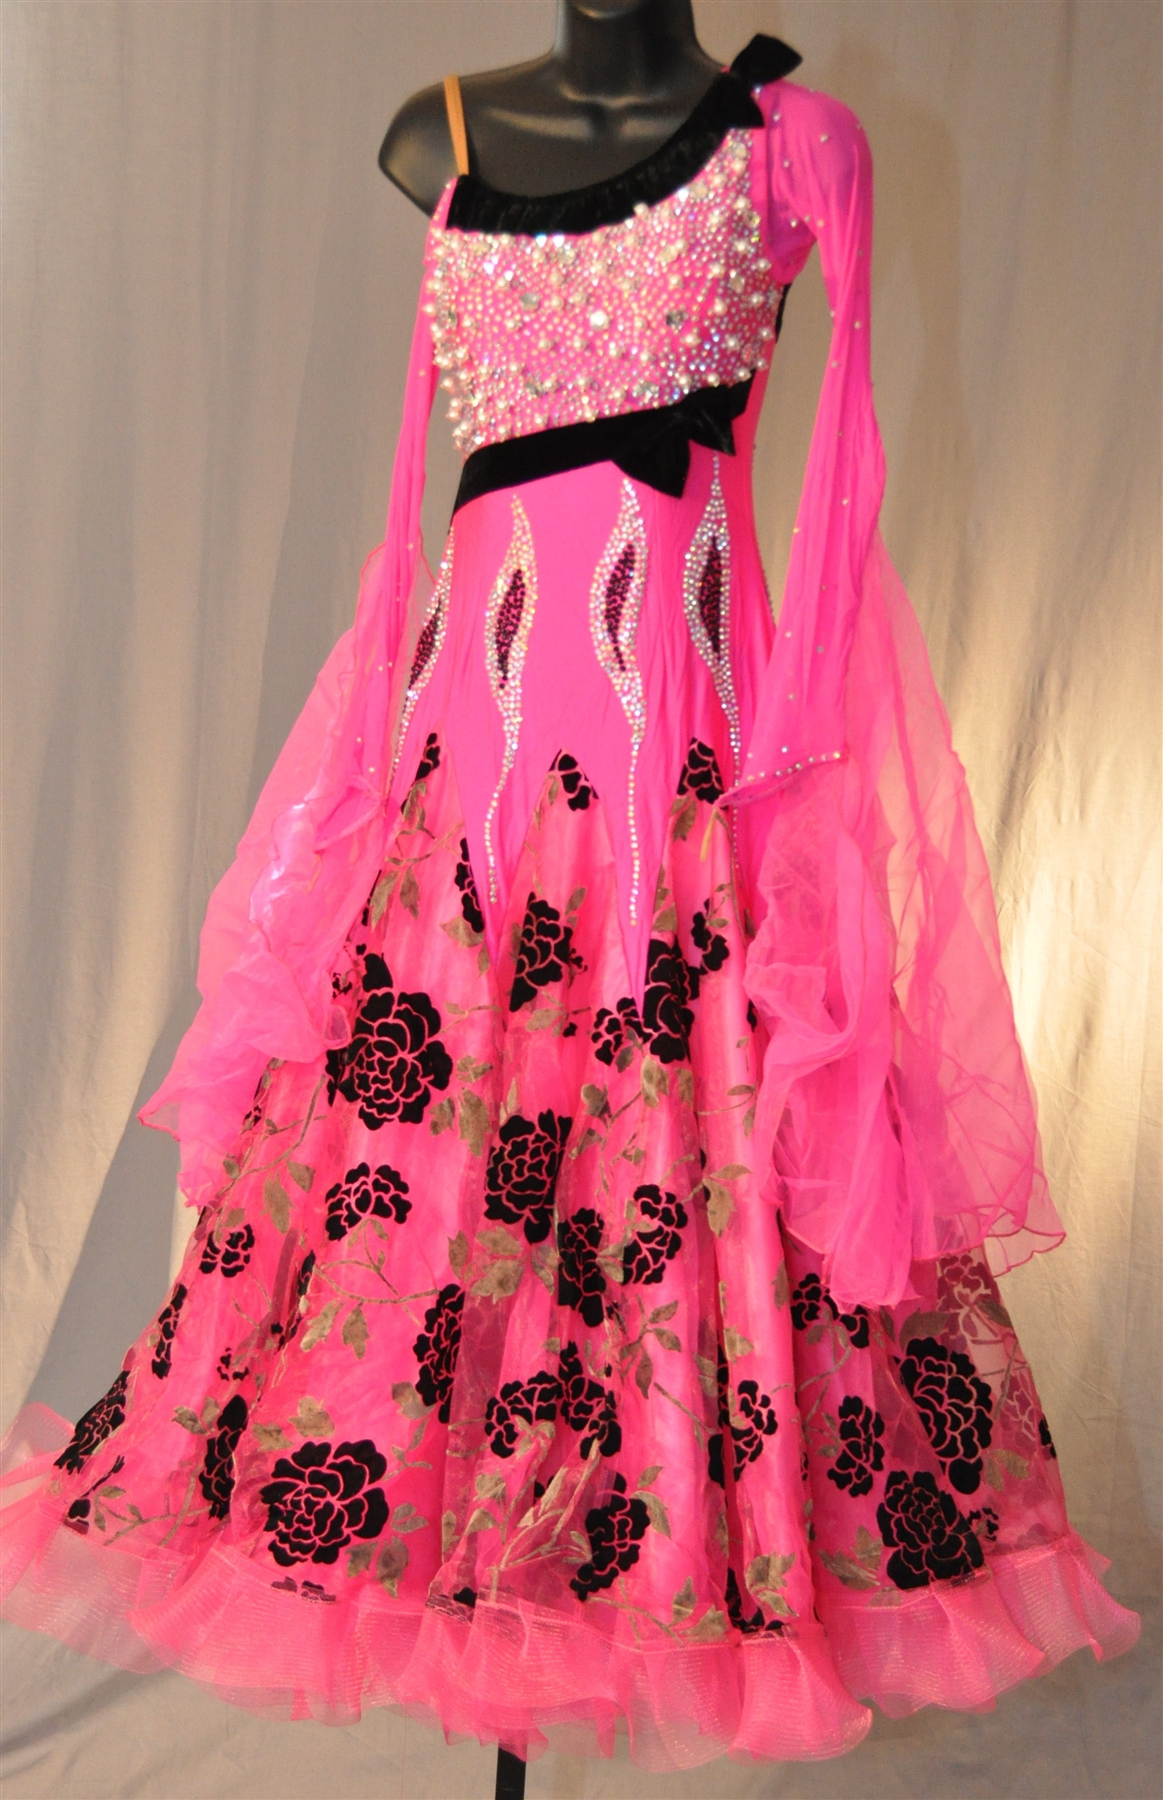 Hot Pink Ballroom Dress